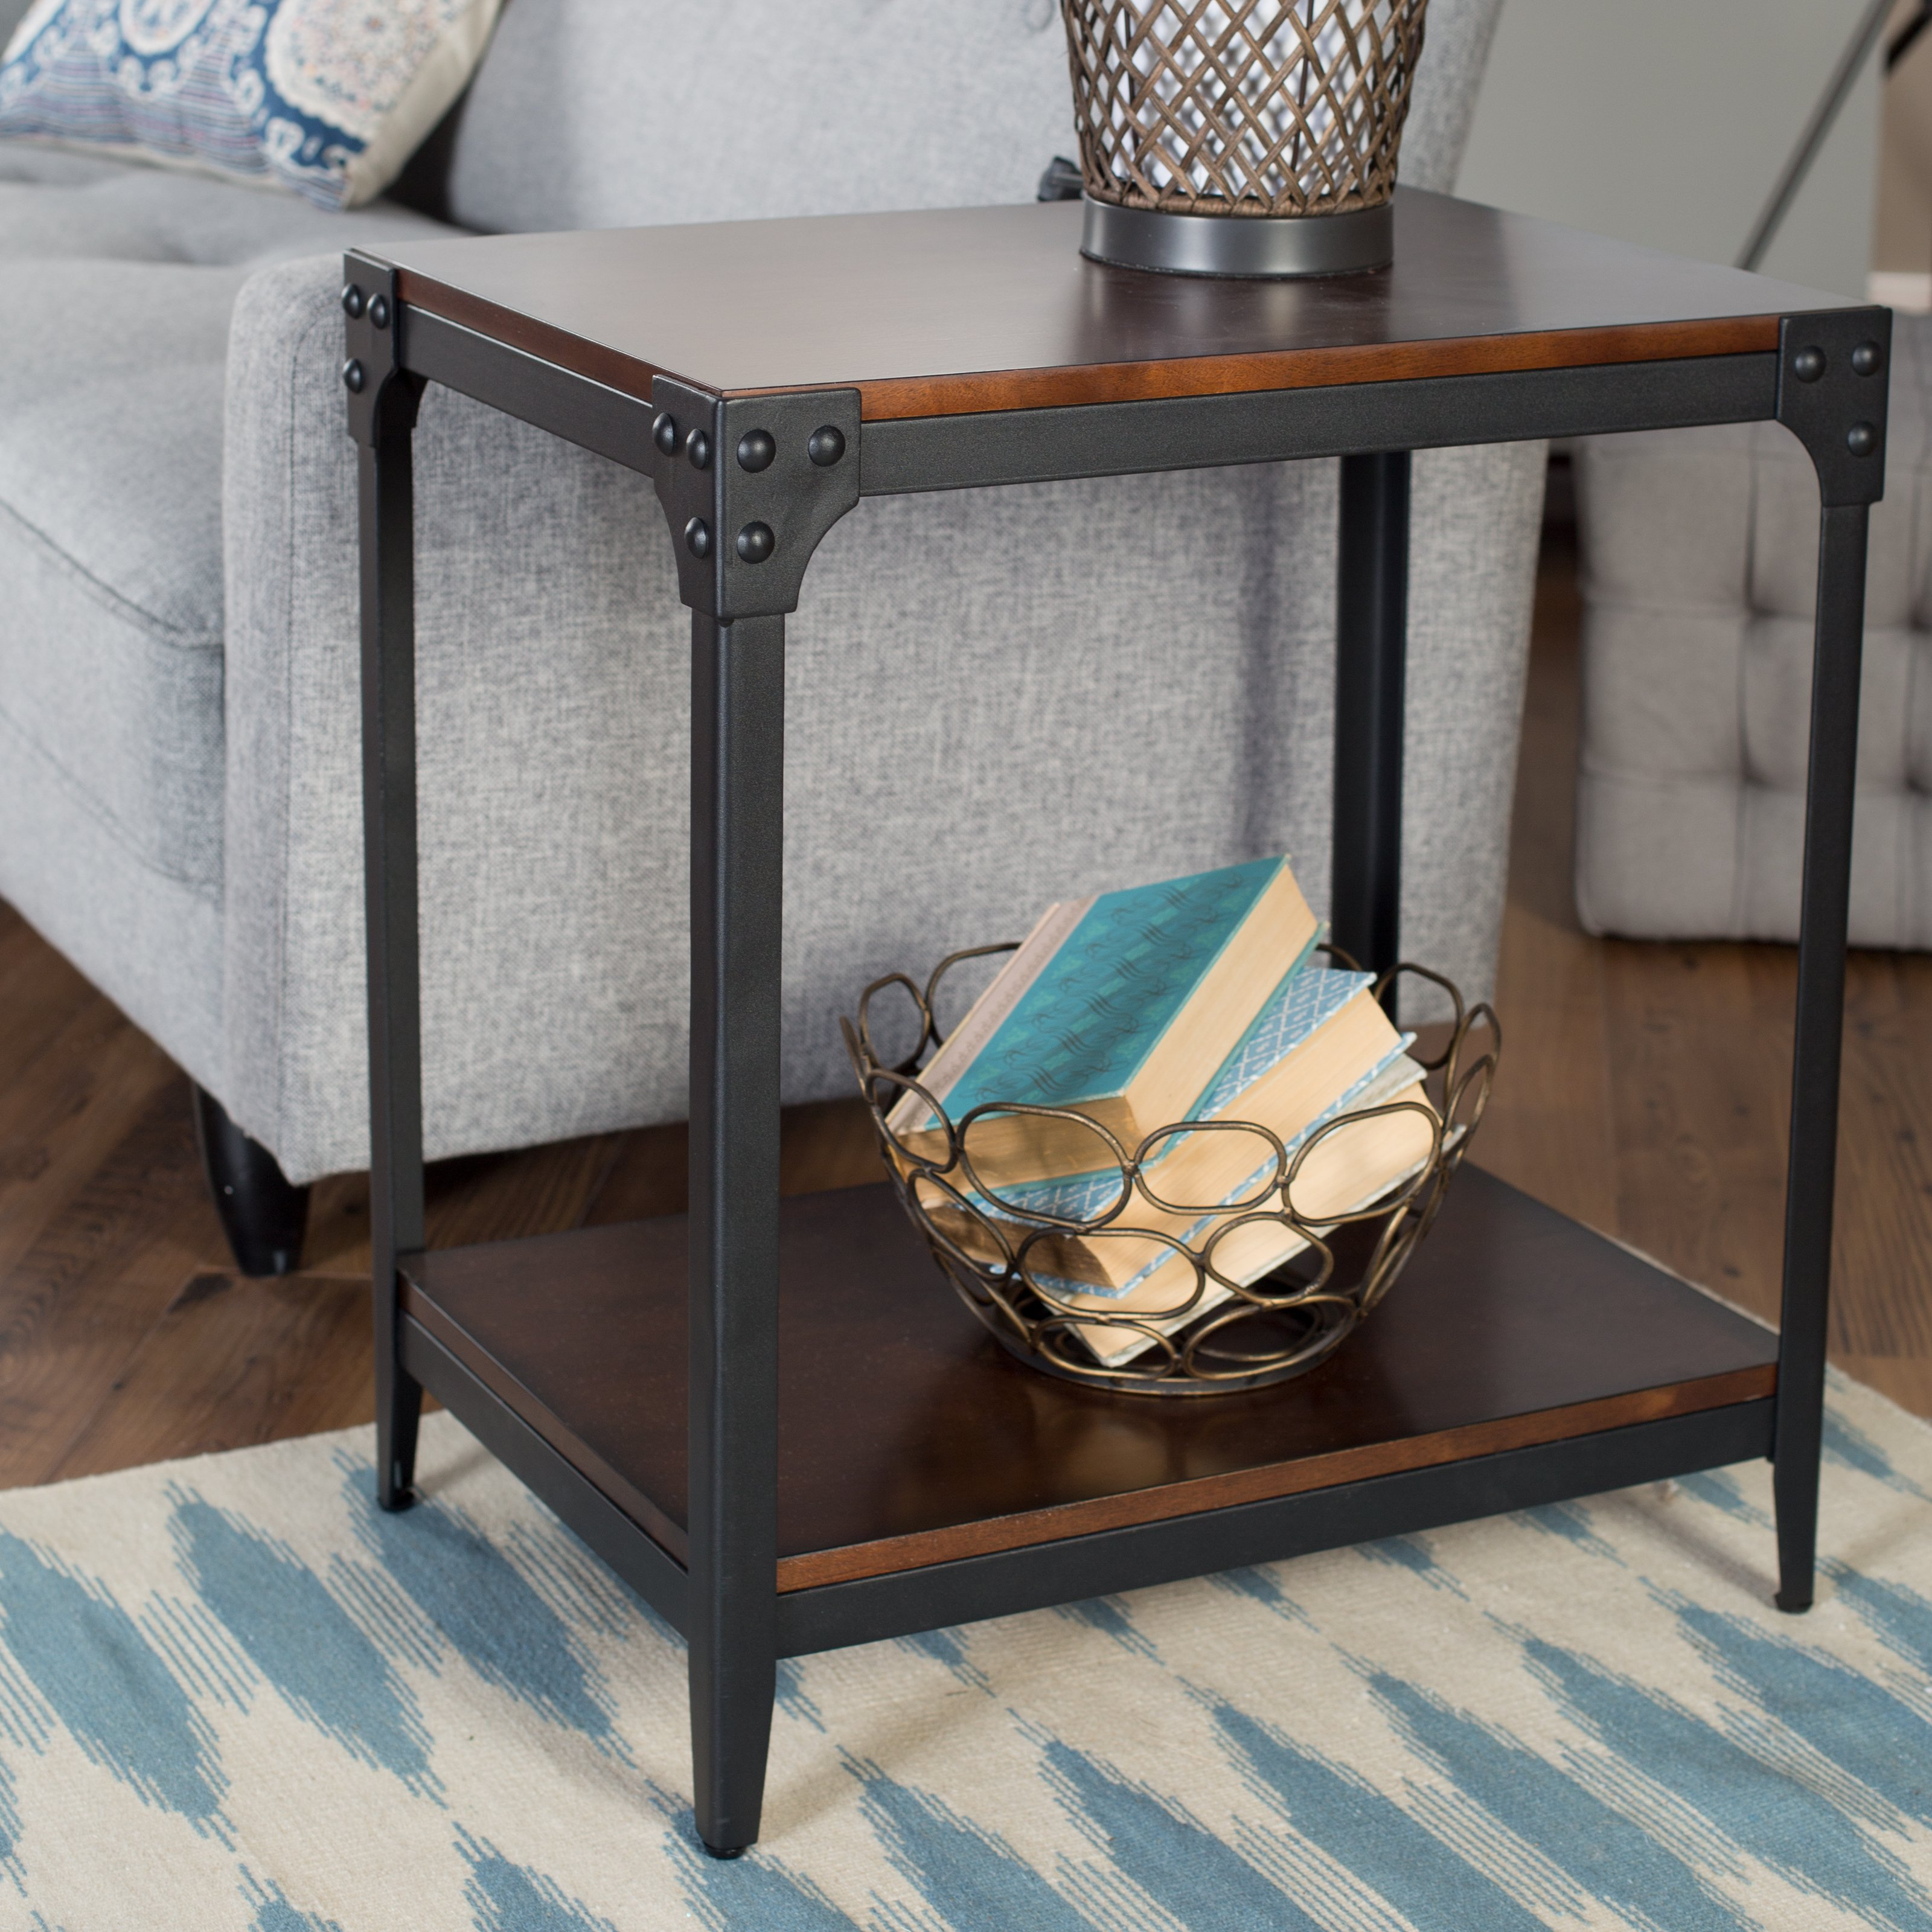 belham living trenton industrial end table espresso accent under retro bedroom furniture coffee legs ikea pier one rattan usb small skinny side sofa with baskets low drum throne